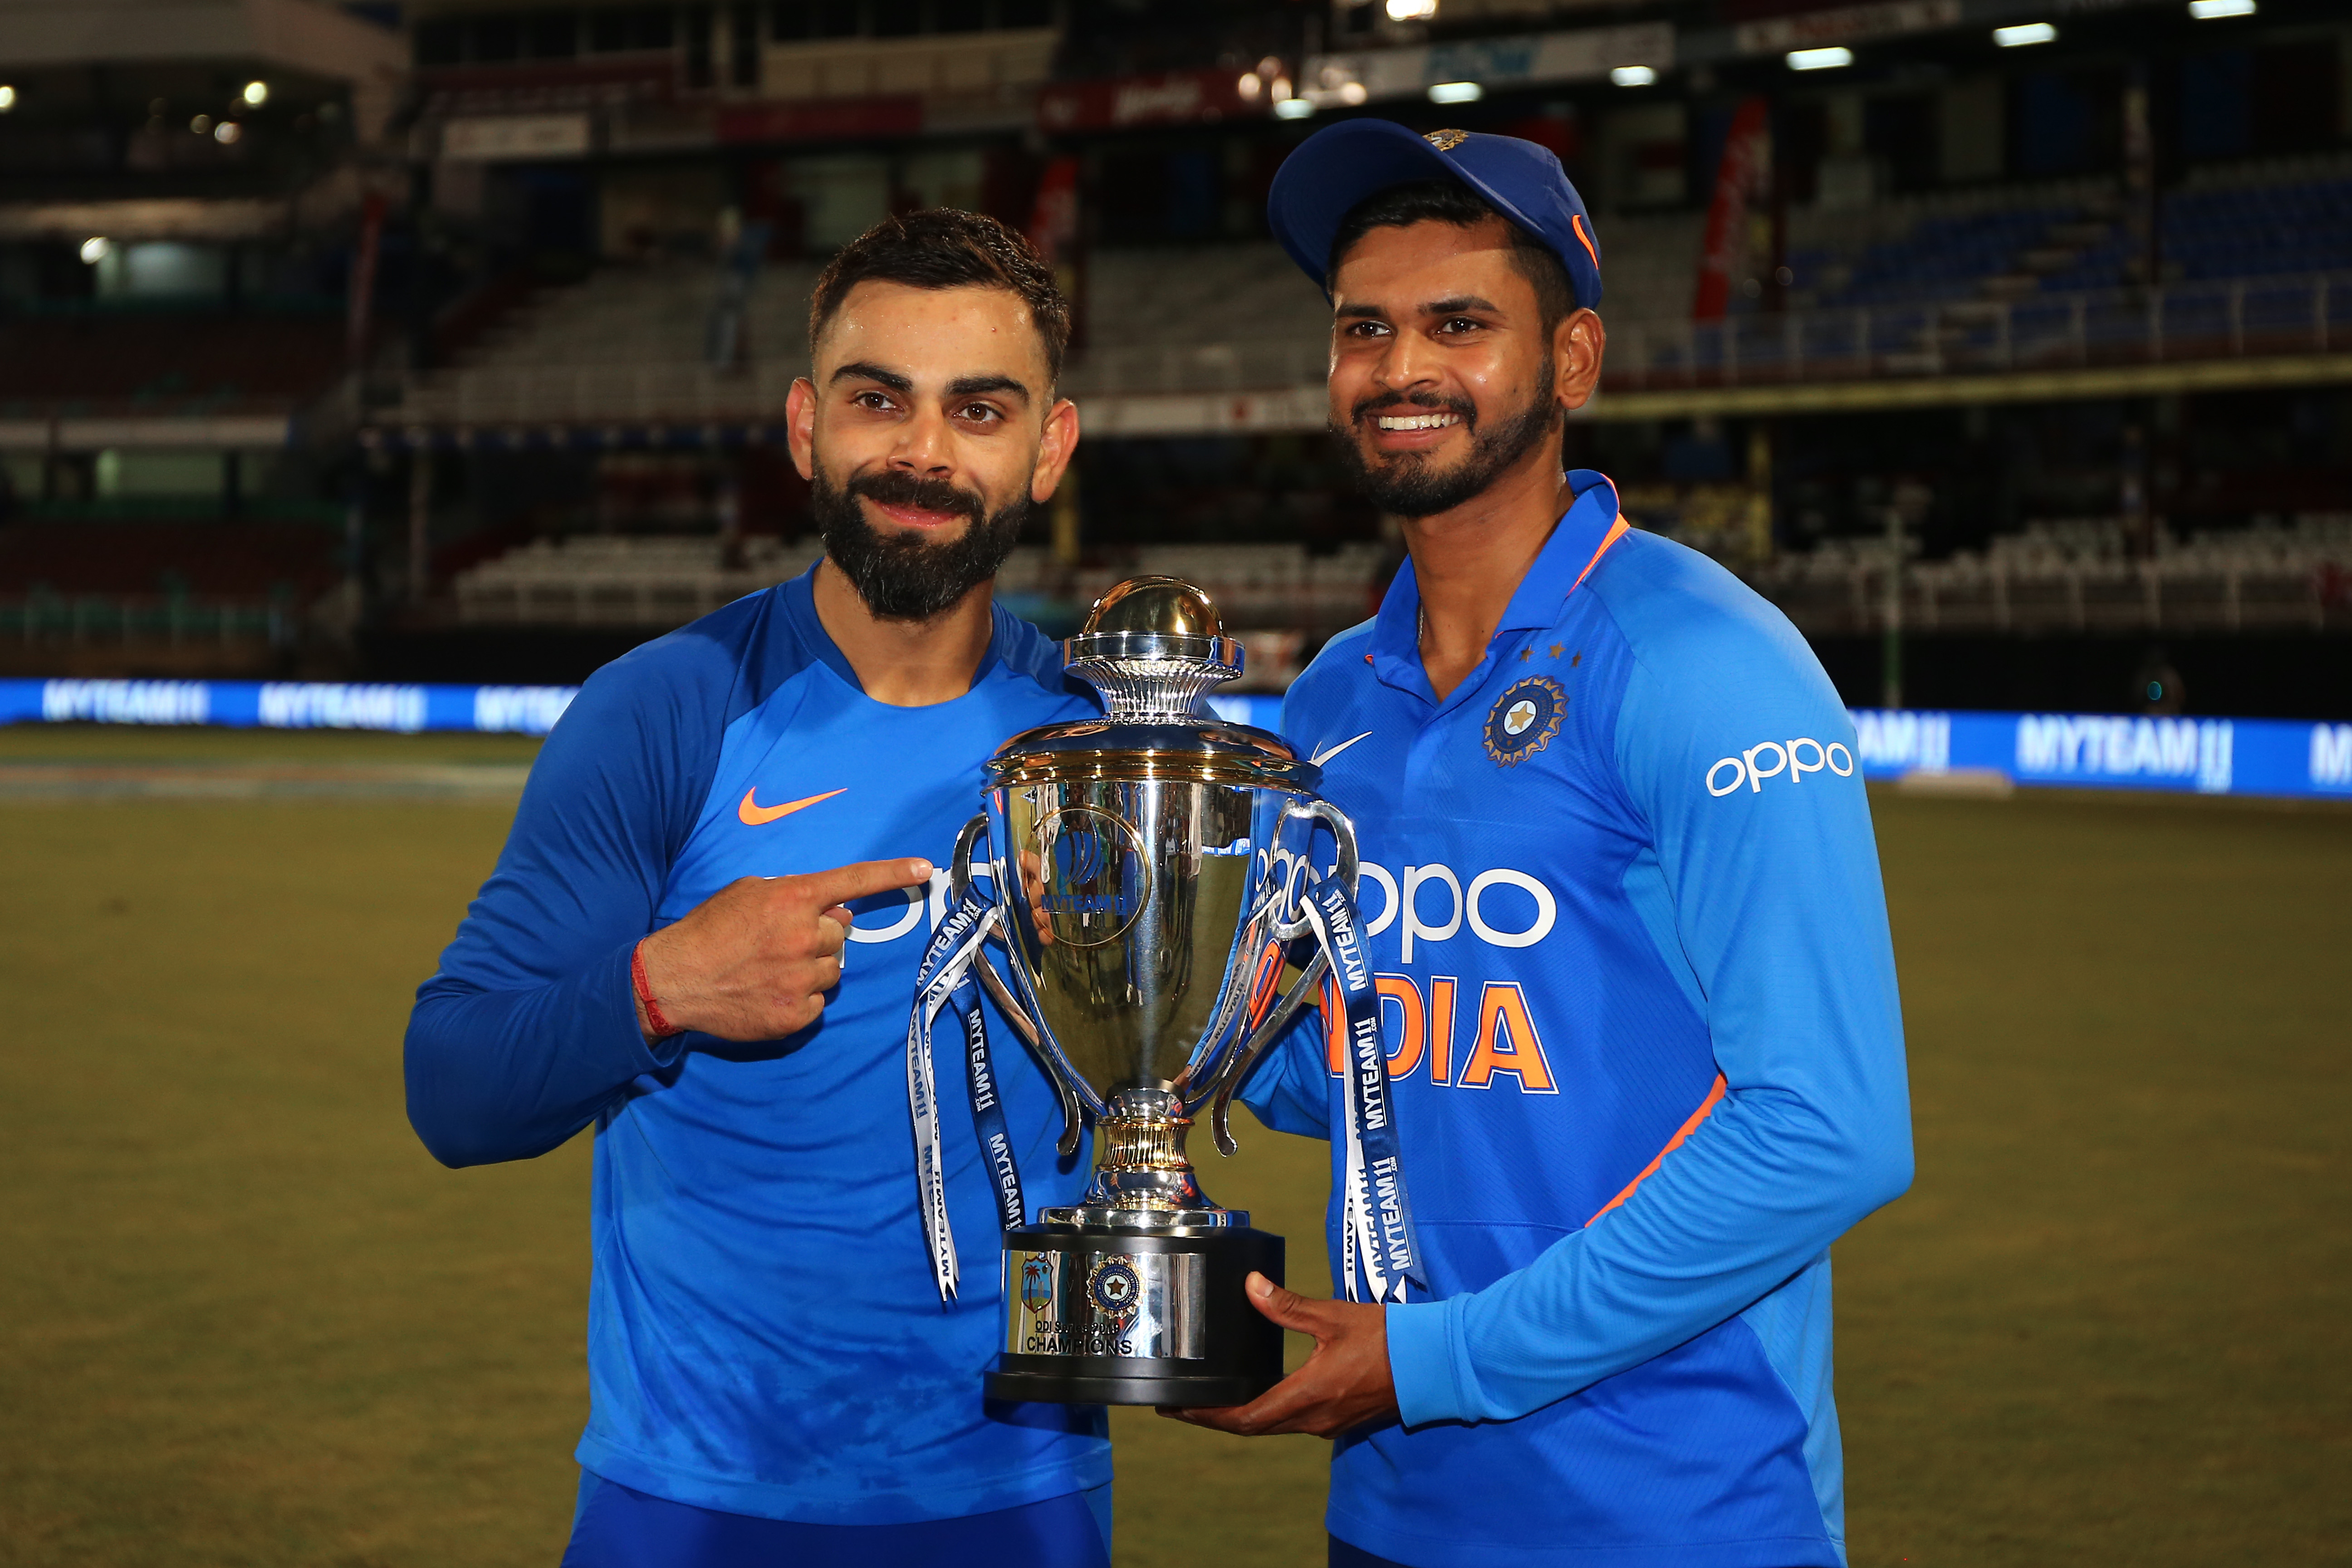 Virat Kohli (R) and Shreyas Iyer (R) of India with the winner's trophy during the third MyTeam11 ODI between the West Indies and India at the Queen's Park Oval  (Photo by Ashley Allen/Getty Images)